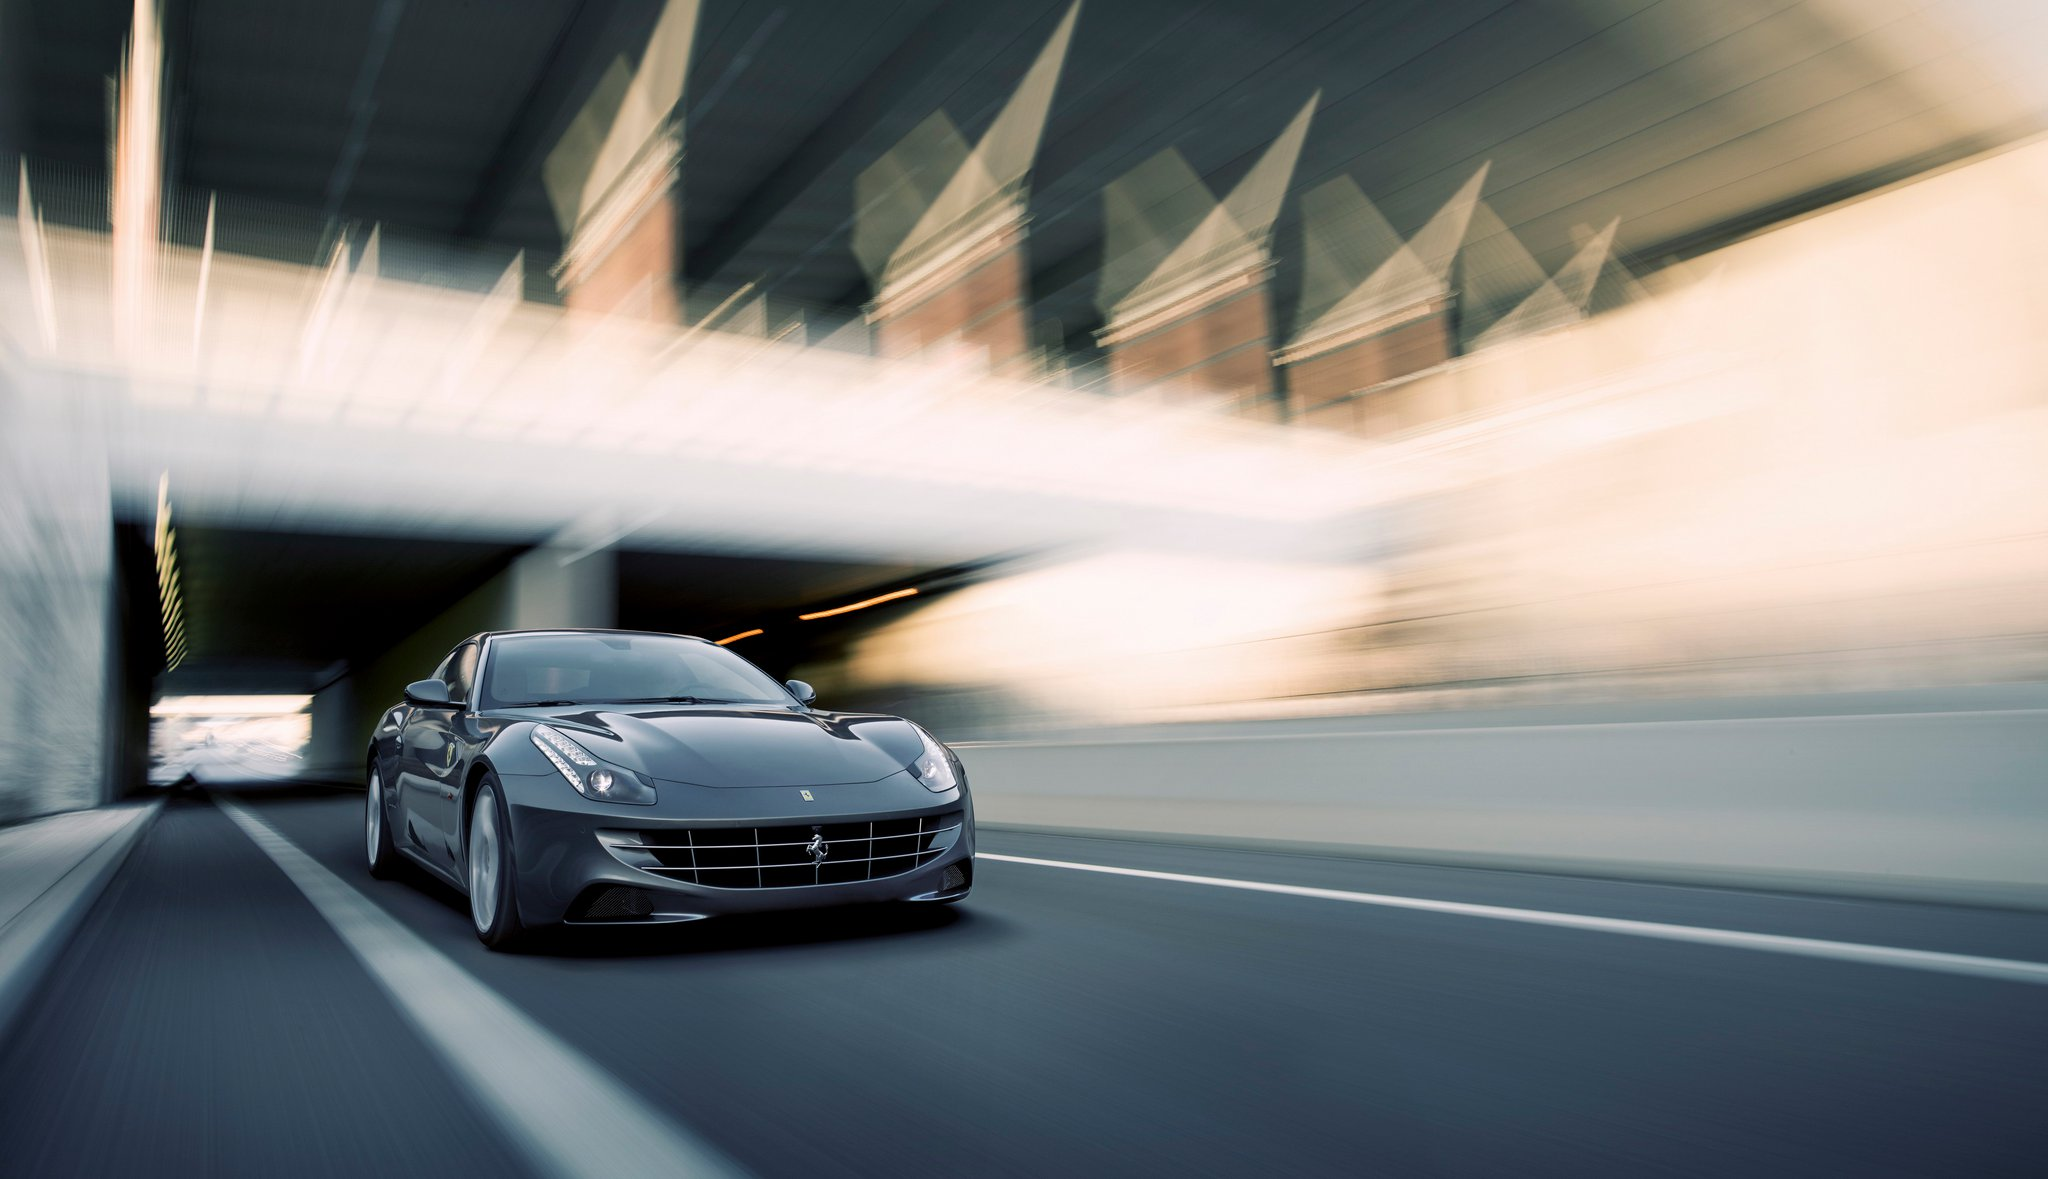 New Ferrari FF Hi-Res Images Released